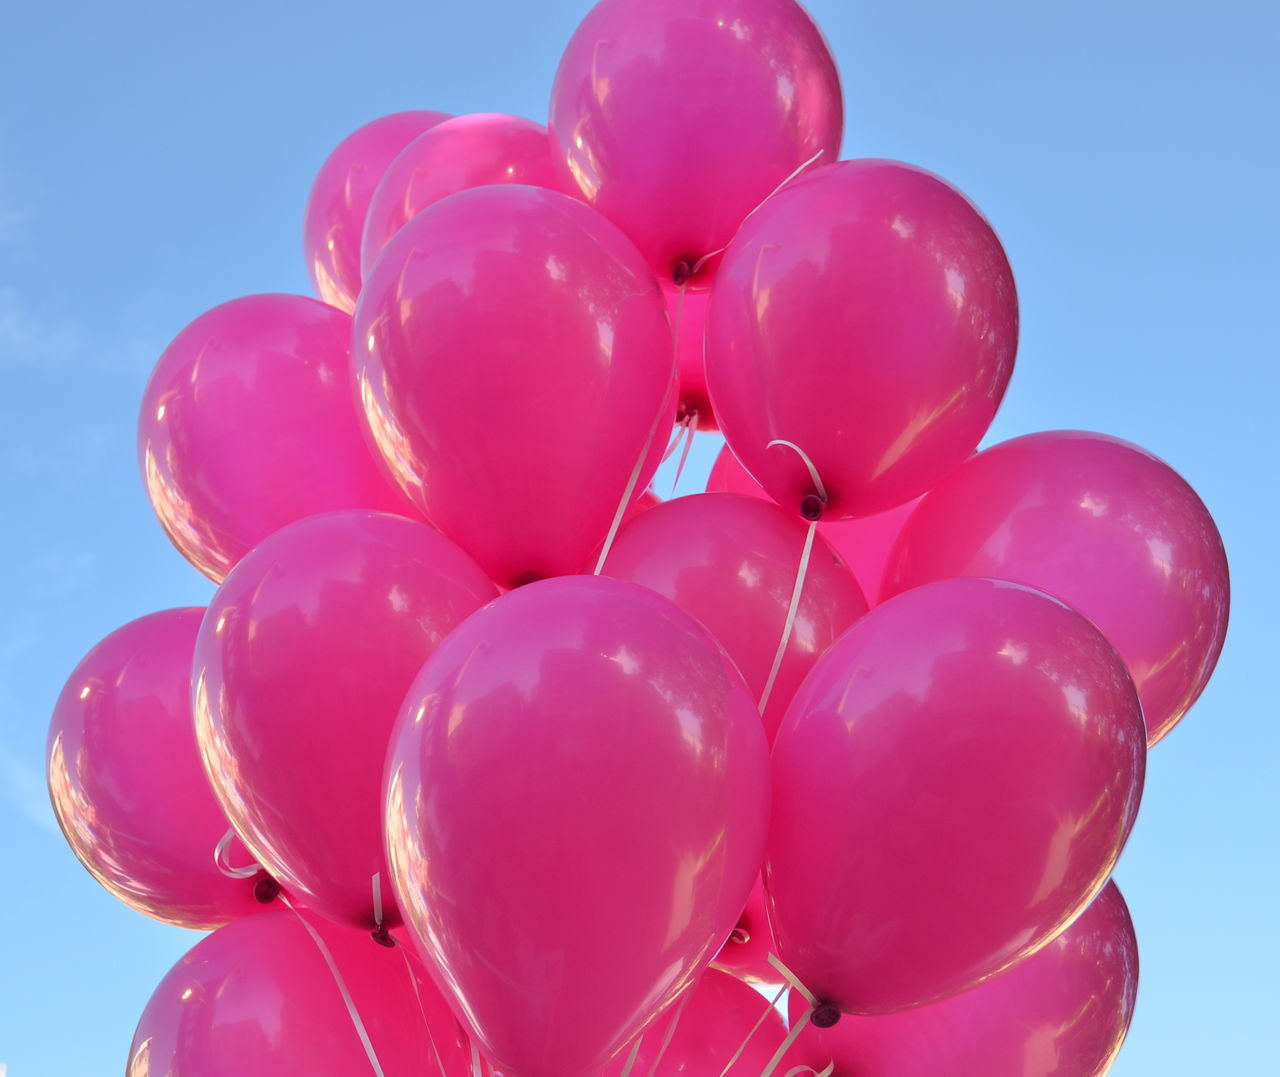 Low Angle View Of Pink Balloons Against Clear Sky